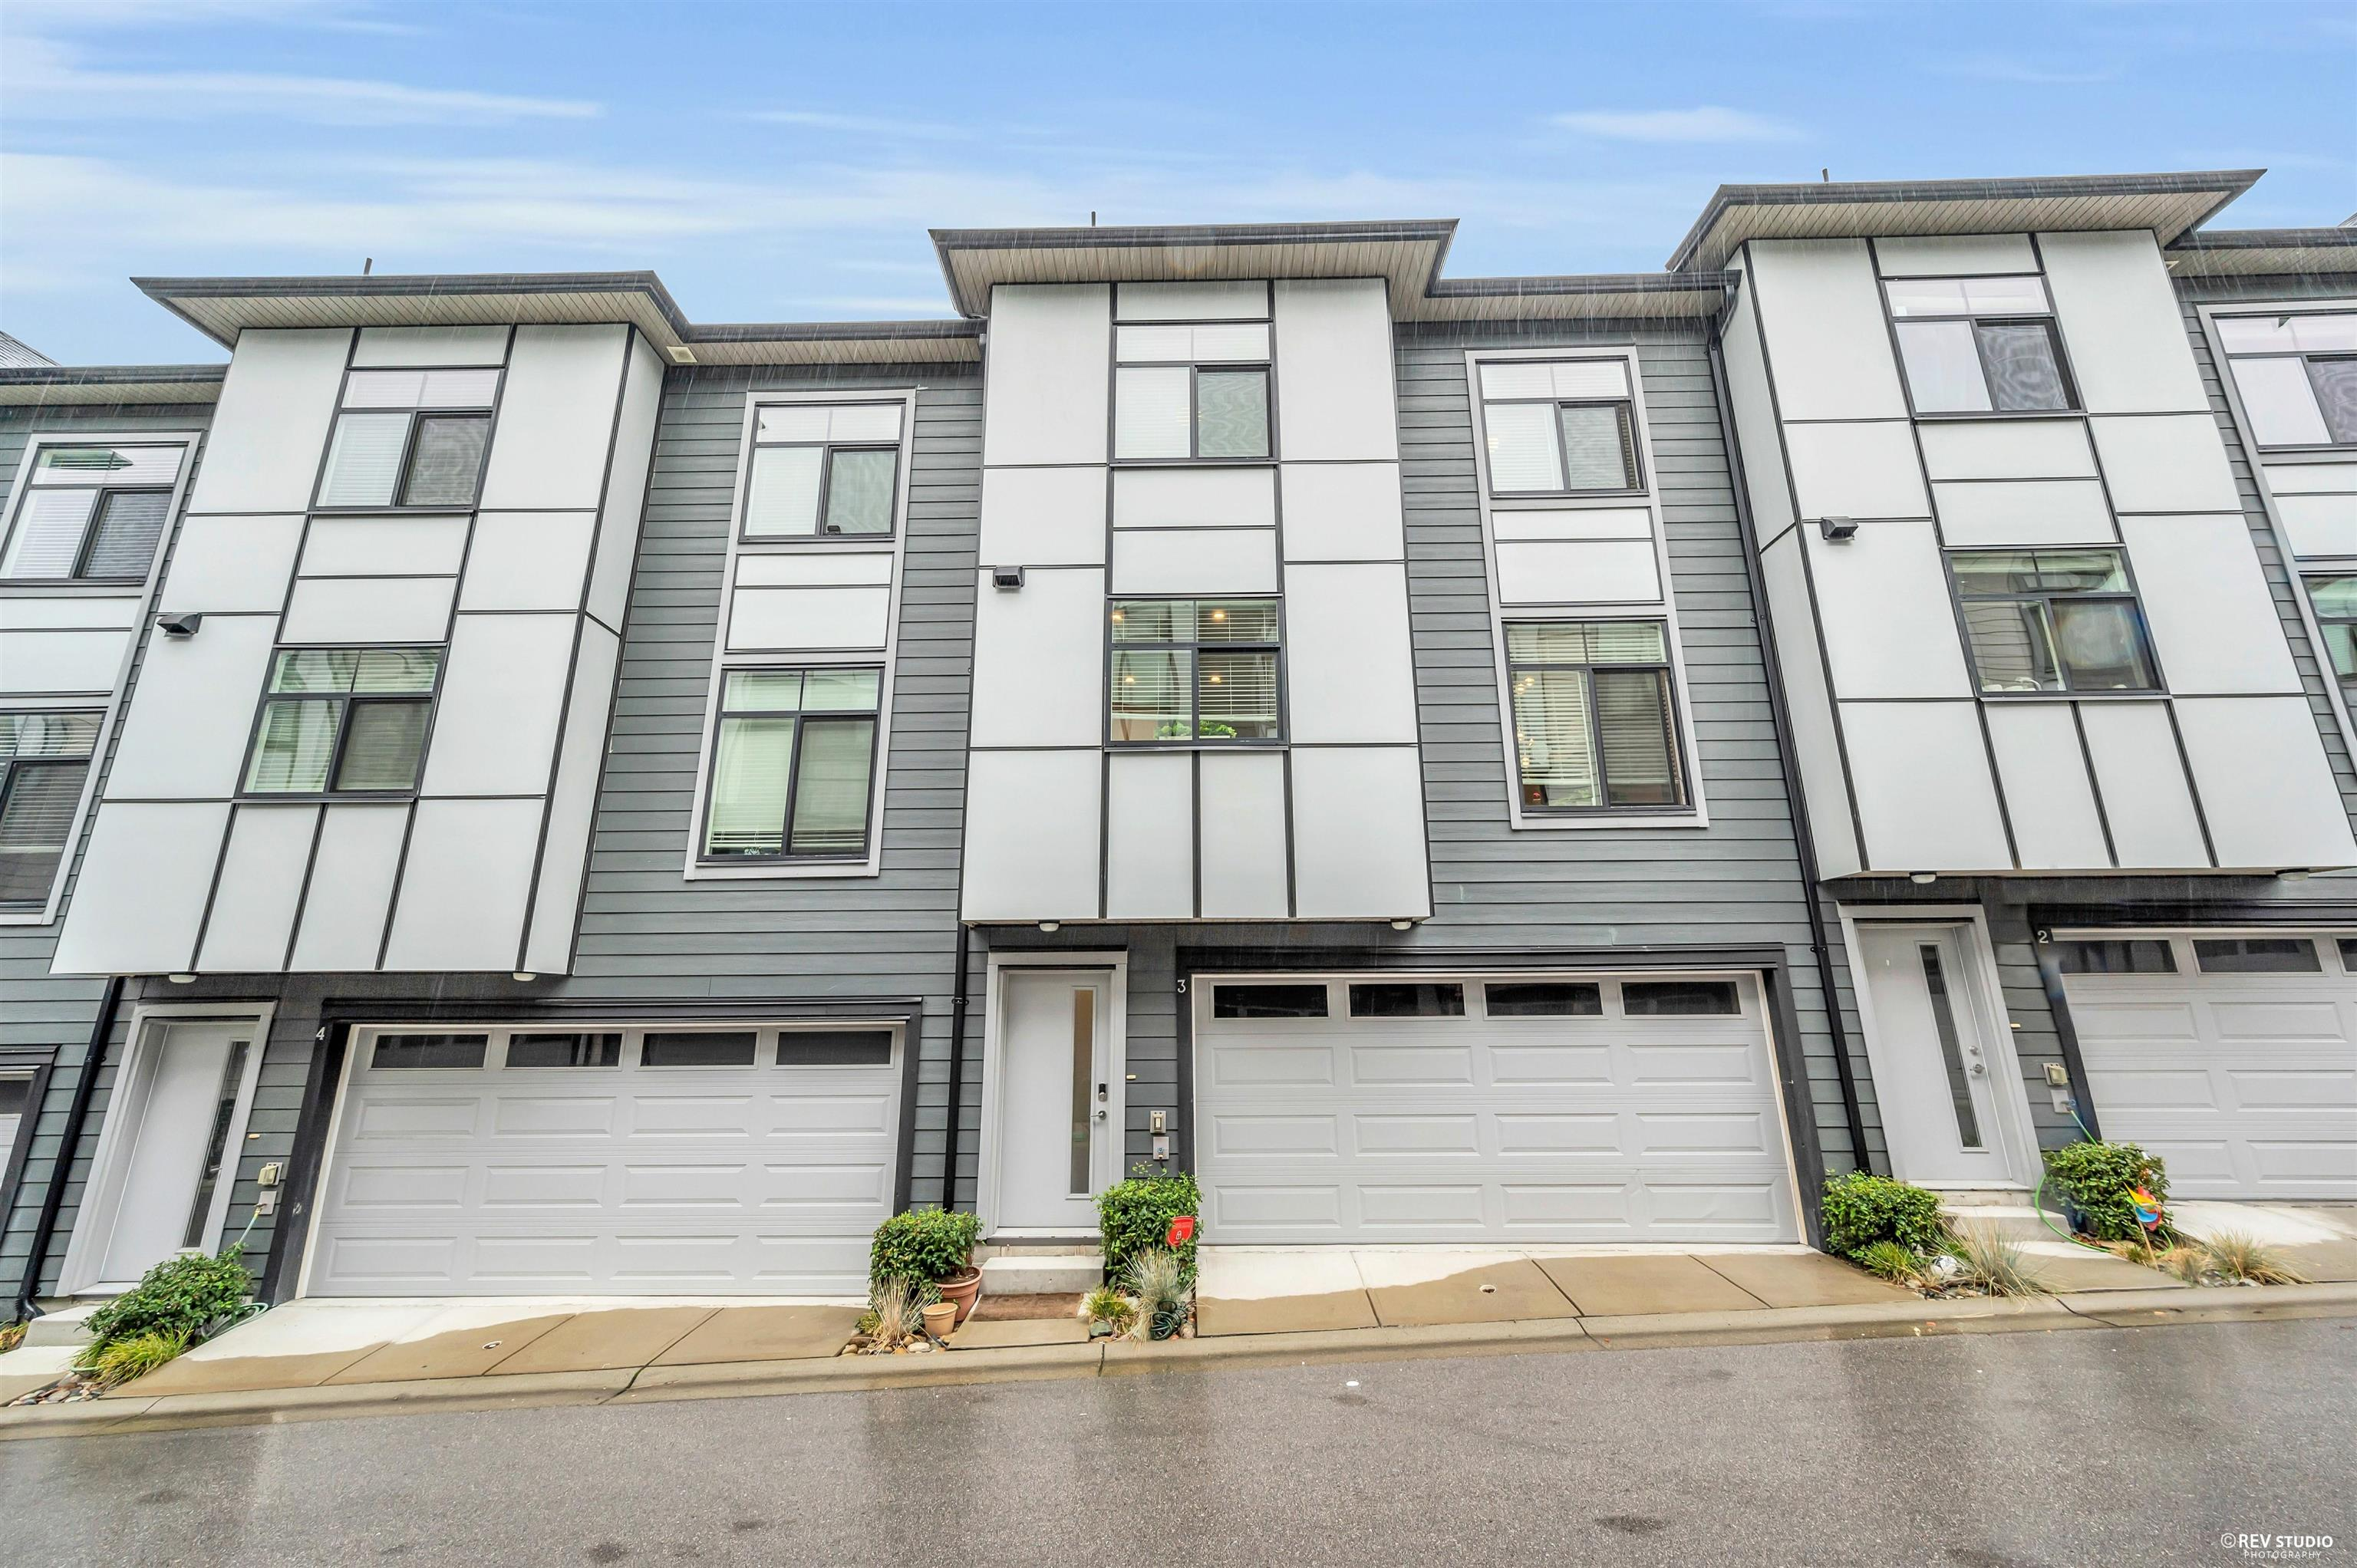 3 2427 164 STREET - Grandview Surrey Townhouse for sale, 3 Bedrooms (R2627356)